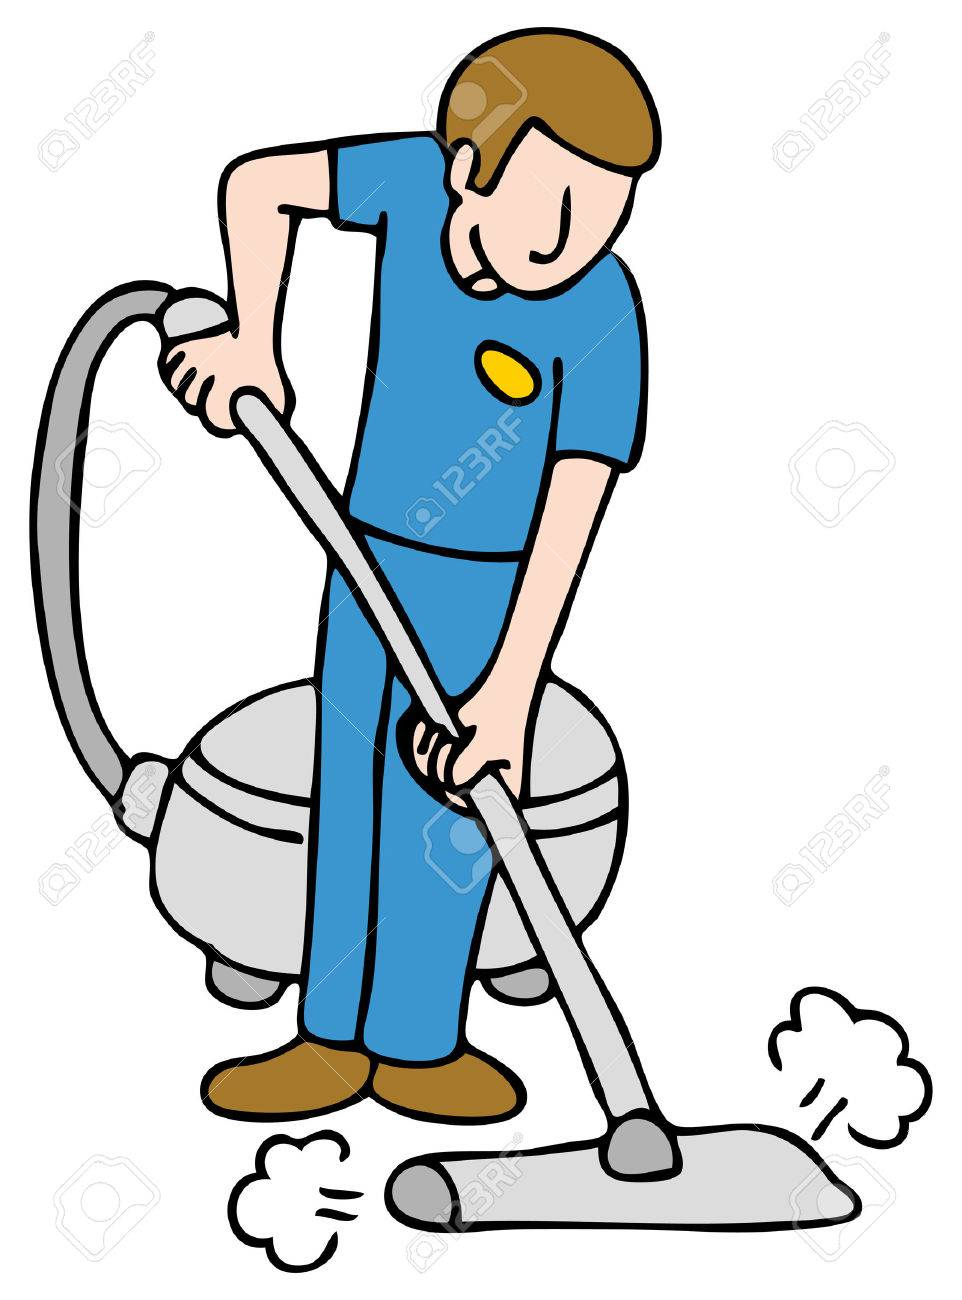 An image of a man using a carpet cleaning machine. Stock Vector - 8566076